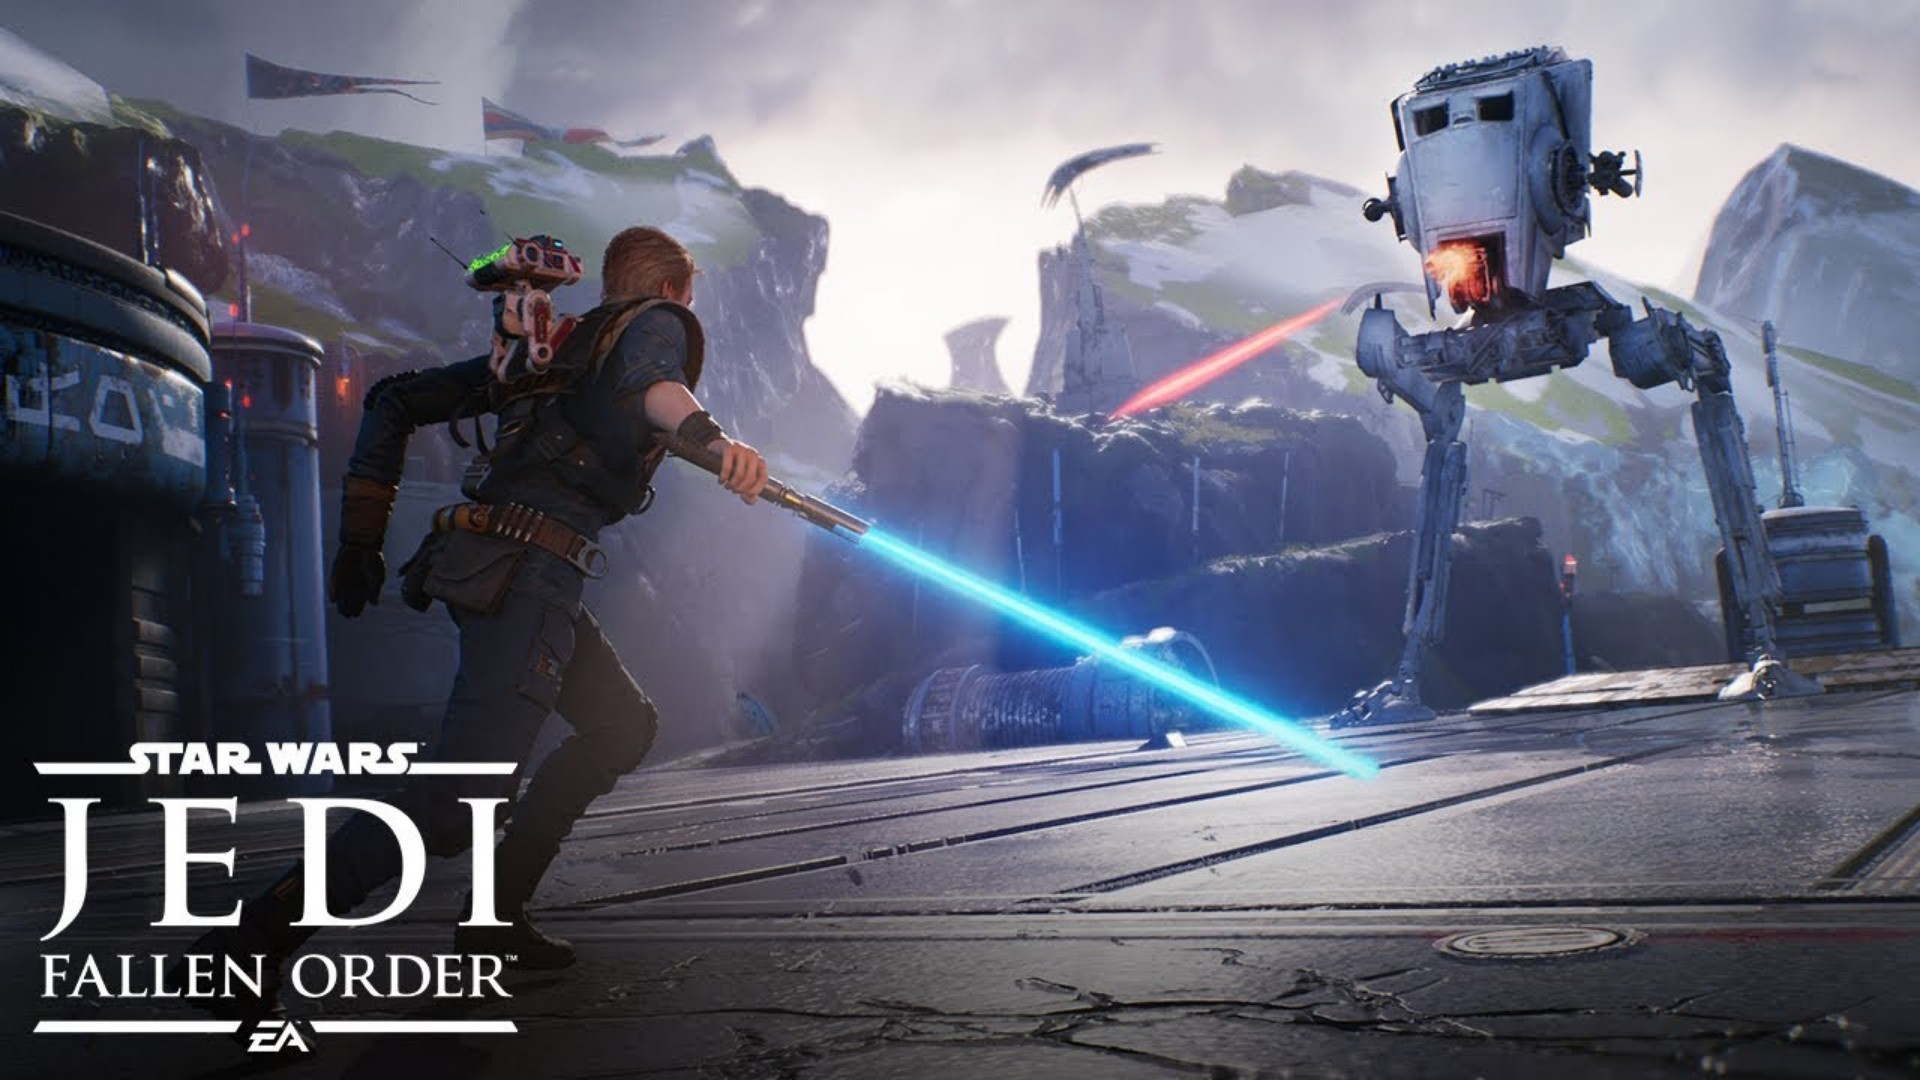 Star Wars: Jedi Fallen Order Will Launch on Steam As EA Plans Return to the Platform Header Image